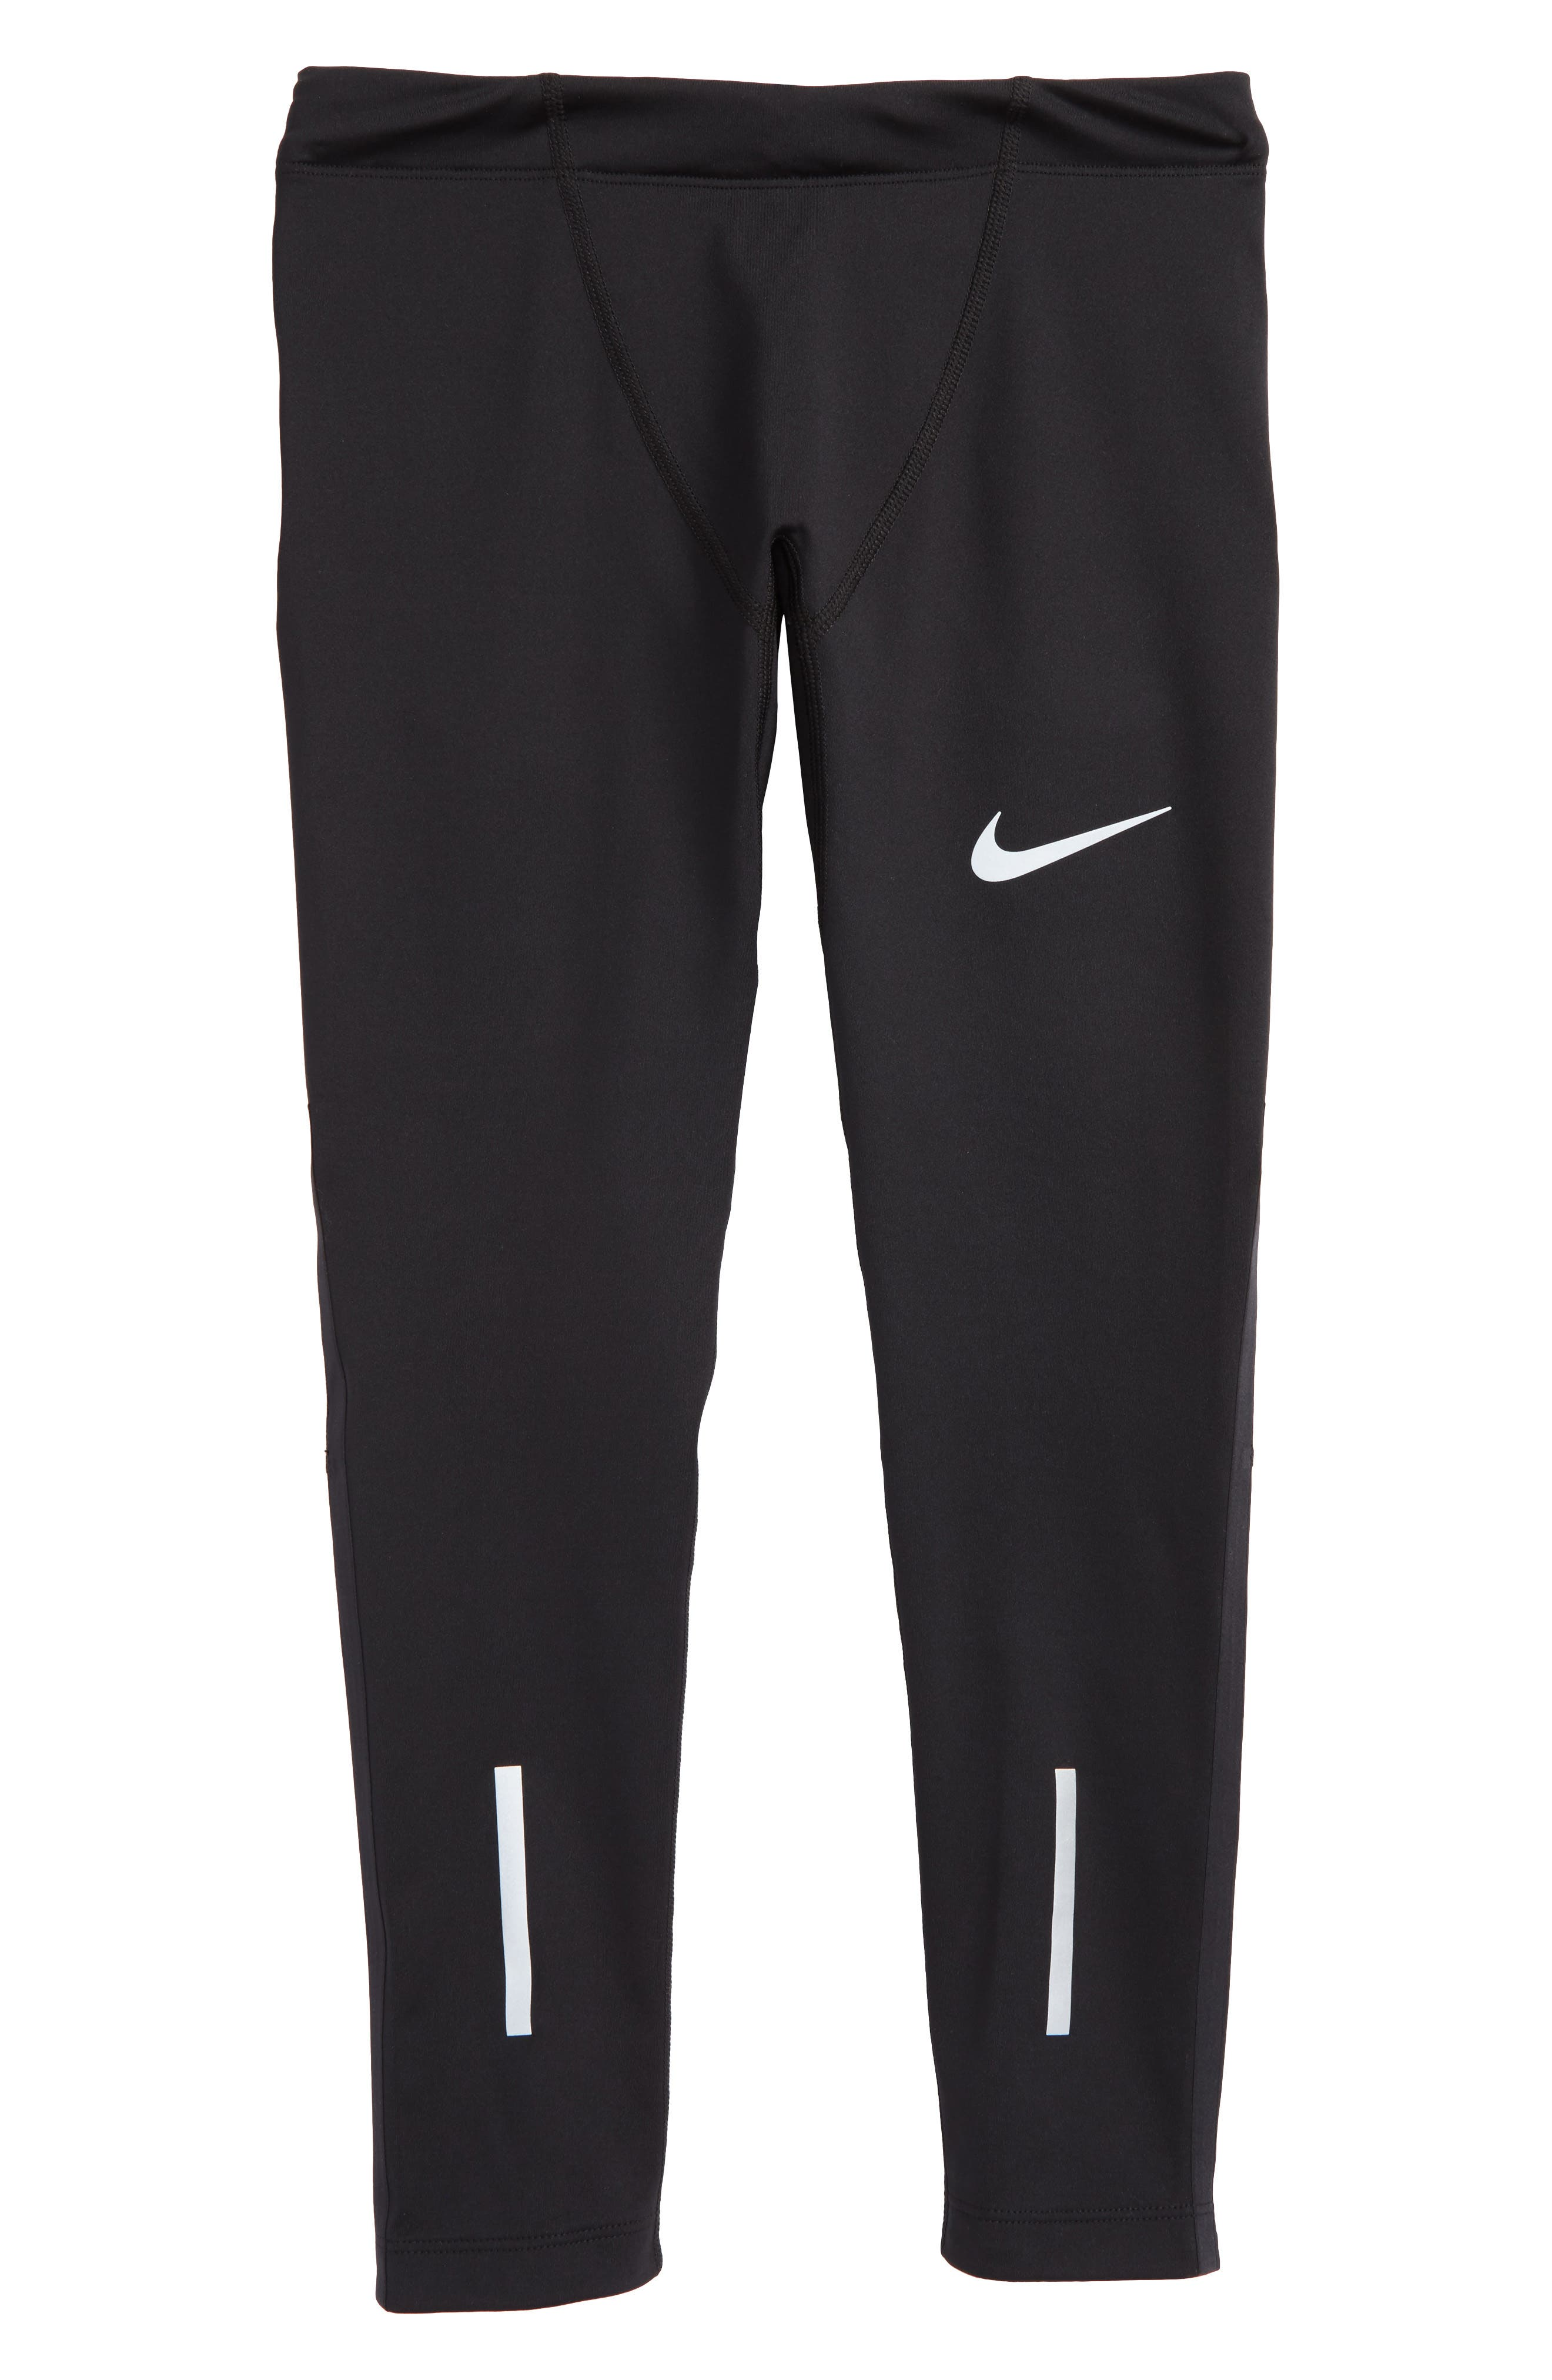 Alternate Image 1 Selected - Nike Power Dry Running Tights (Little Boys & Big Boys)